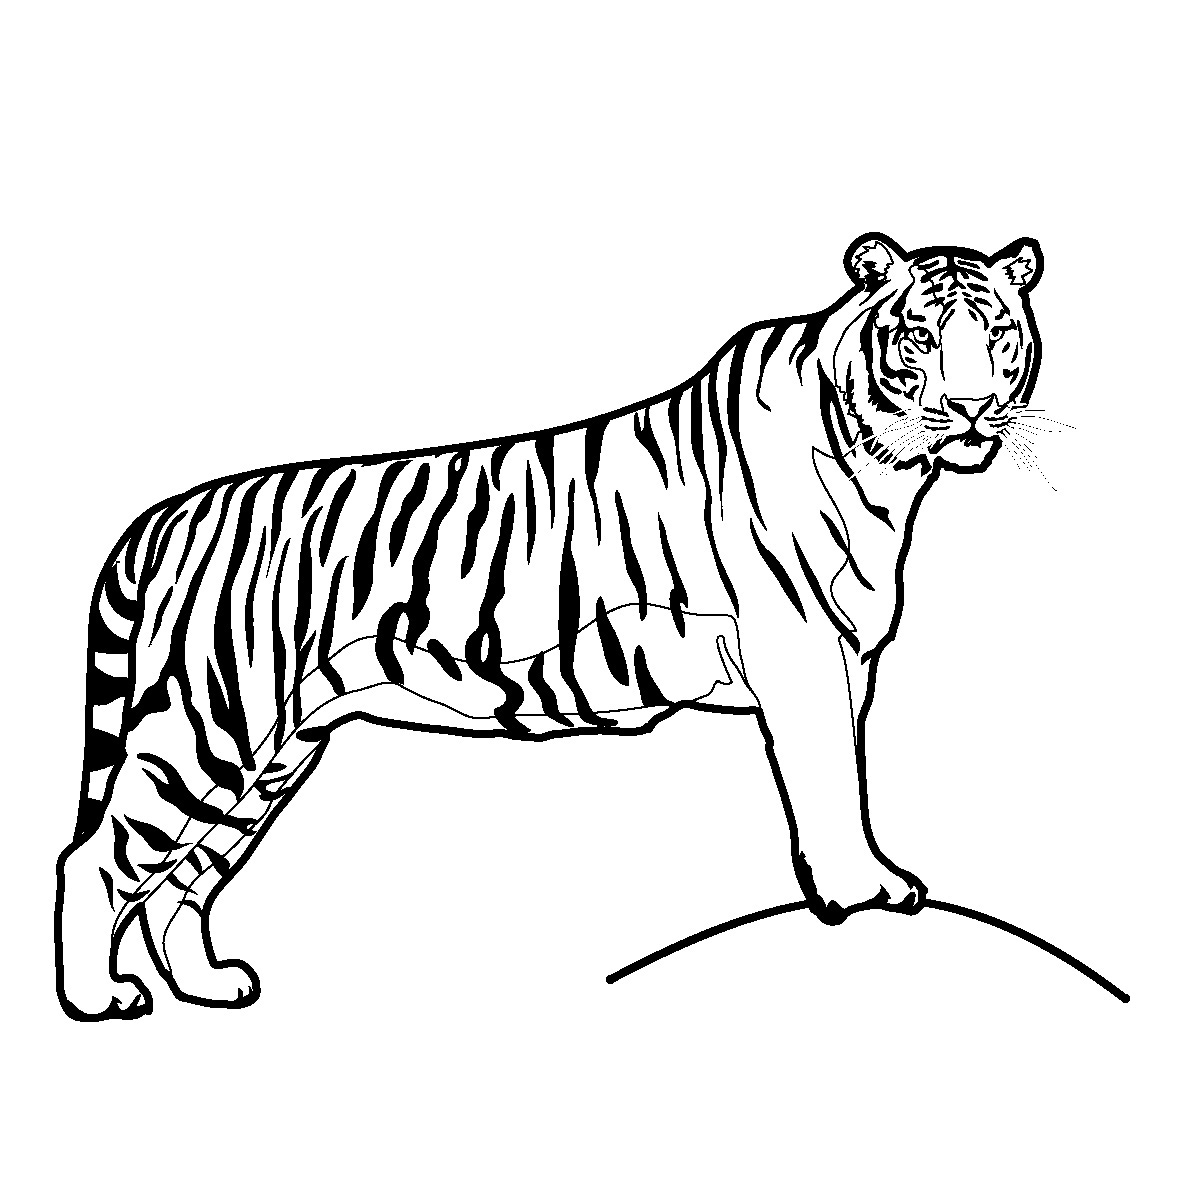 Tiger Clip Art Pictures Black And White -Tiger Clip Art Pictures Black And White | Clipart library - Free-13